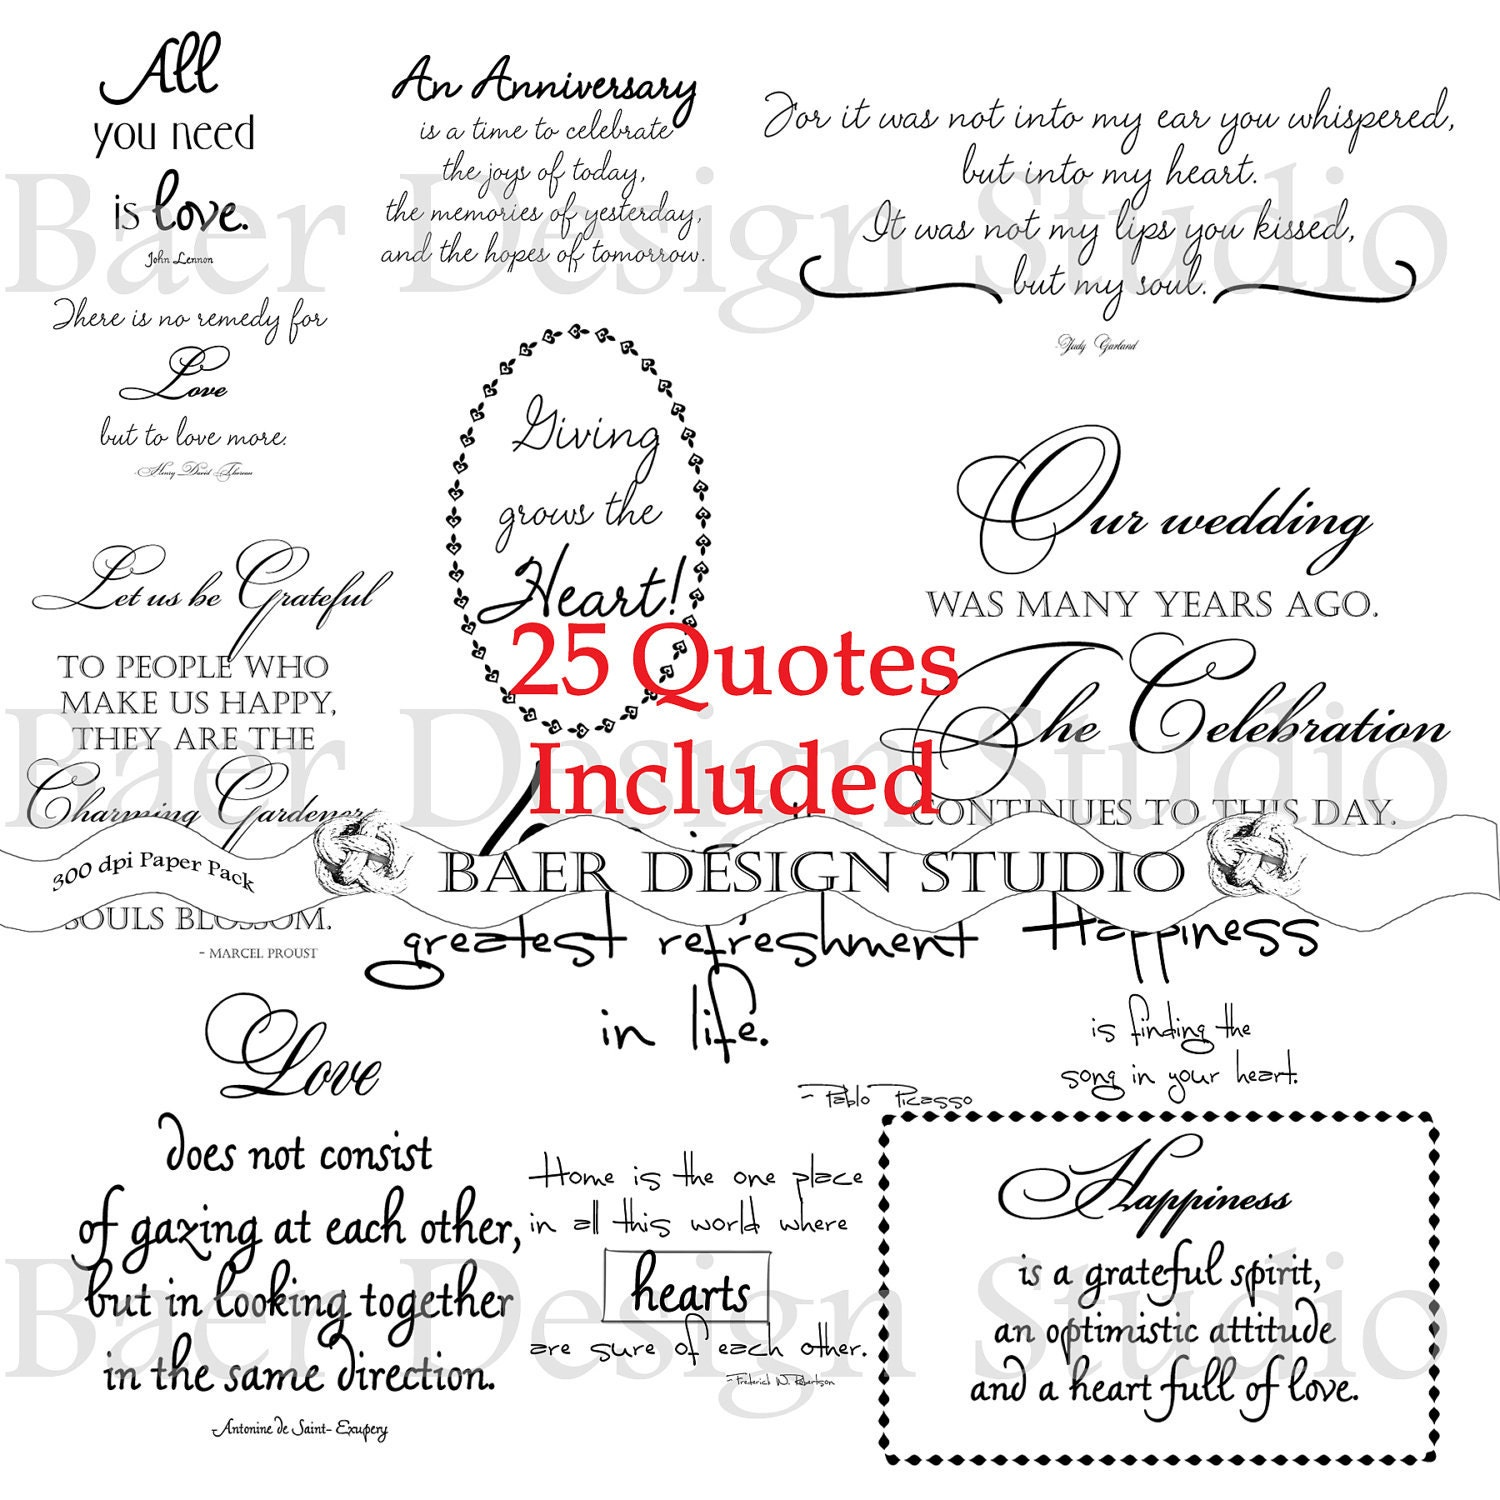 wedding scrapbook sayings fvfsN 7CNvrencPvsDBqGHtHc*4jx 7CzU wedding scrapbook Wedding